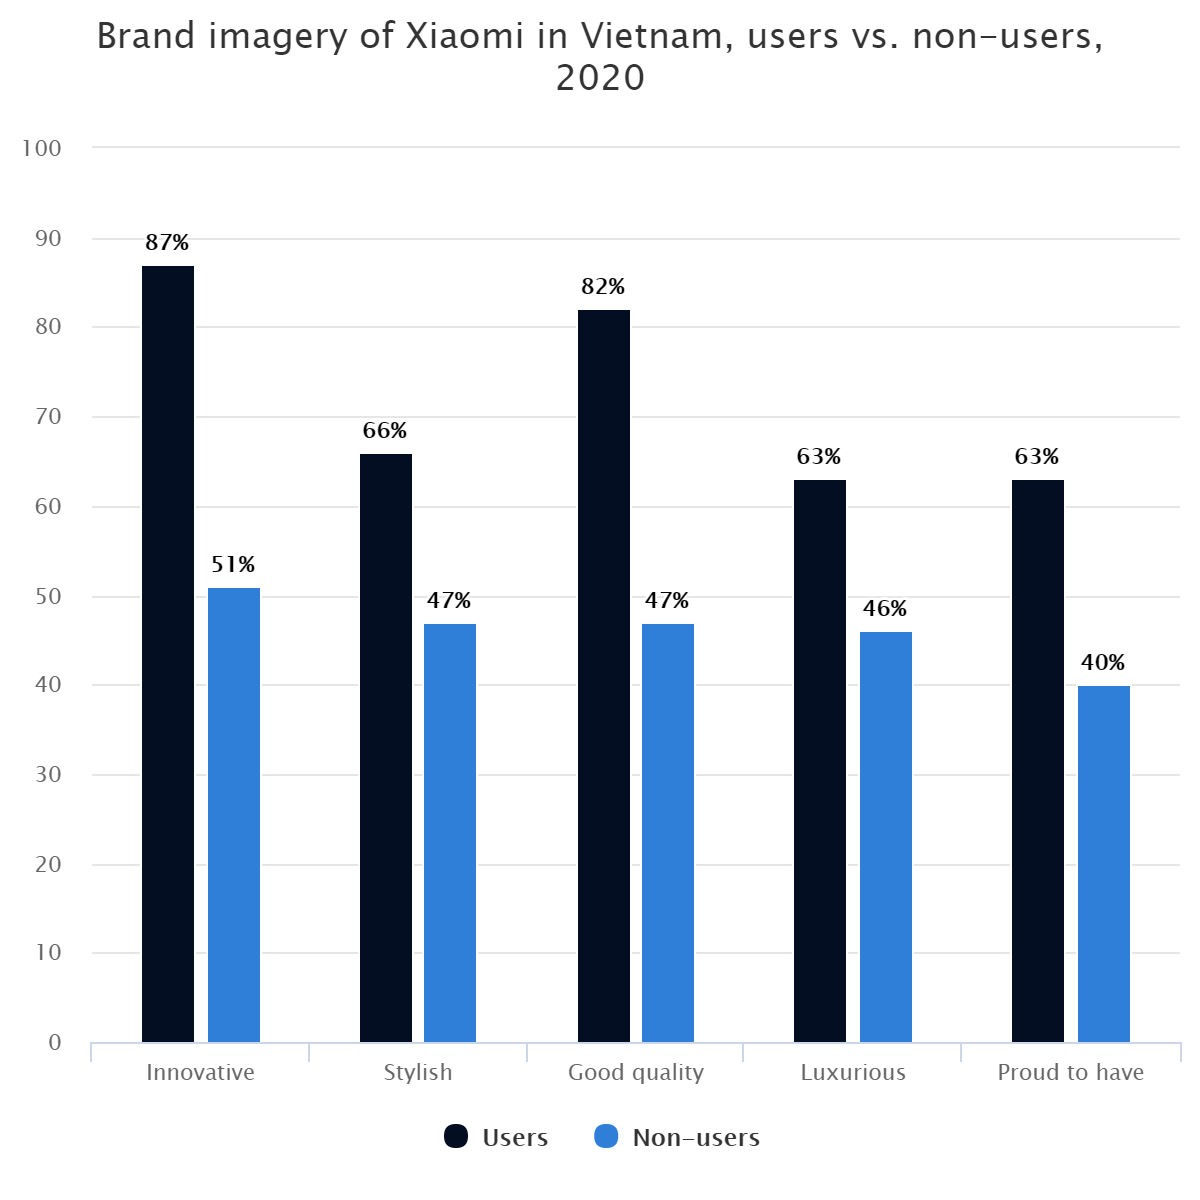 Brand imagery of Xiaomi in Vietnam, users vs. non-users, 2020